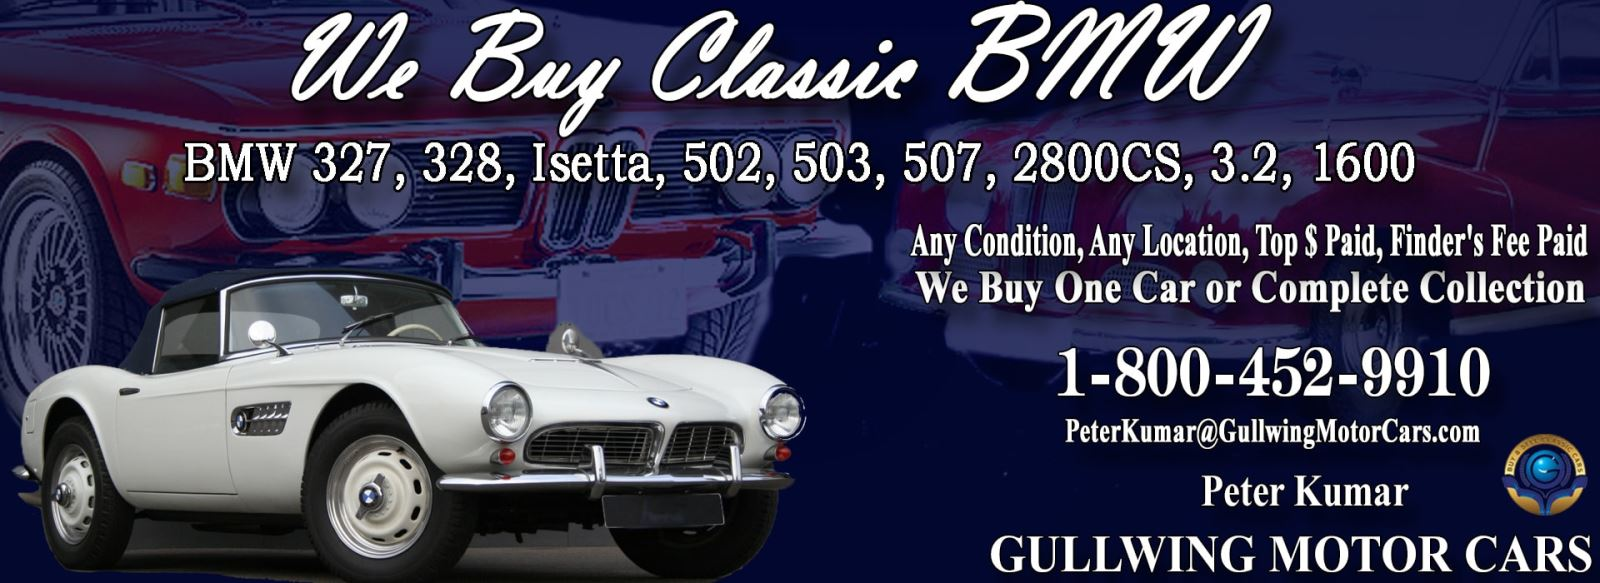 Classic BMW 507 for sale, we buy vintage BMW 507. Call Peter Kumar. Gullwing Motor